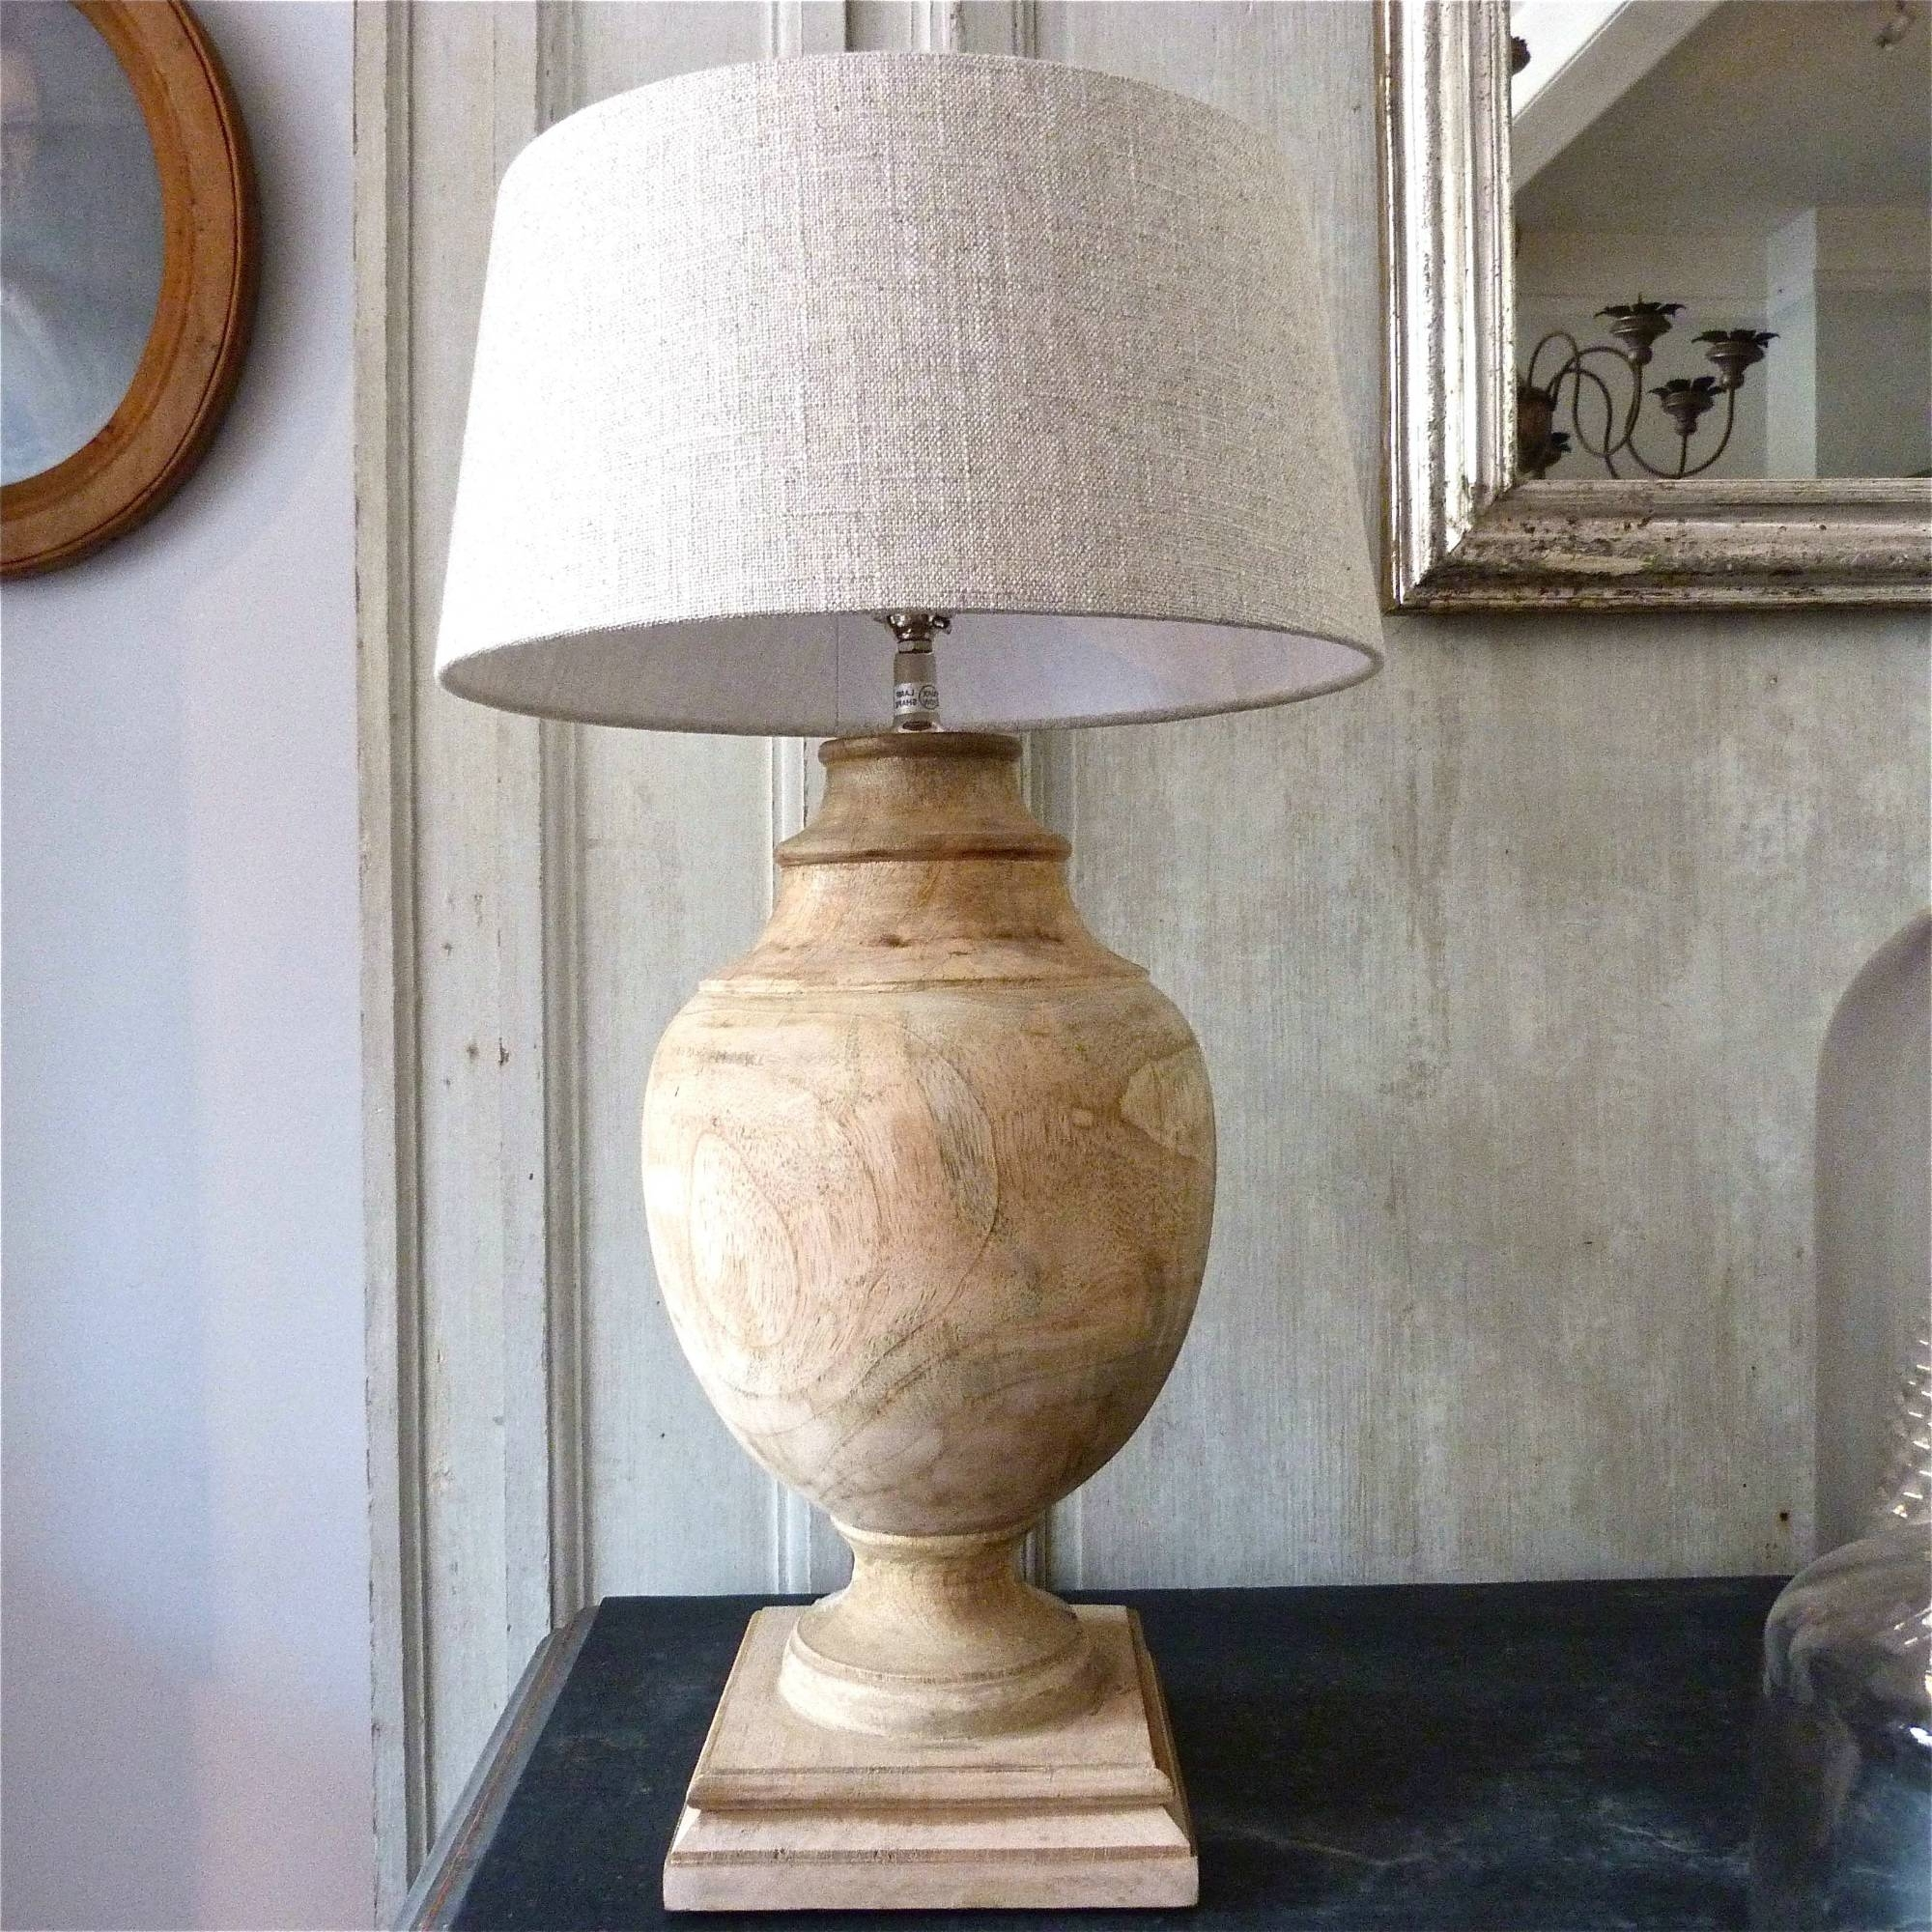 Current Large Table Lamps For Living Room For Lamp : Large Table Lamps Top Gallery Photo Design For Sale Living (View 3 of 20)